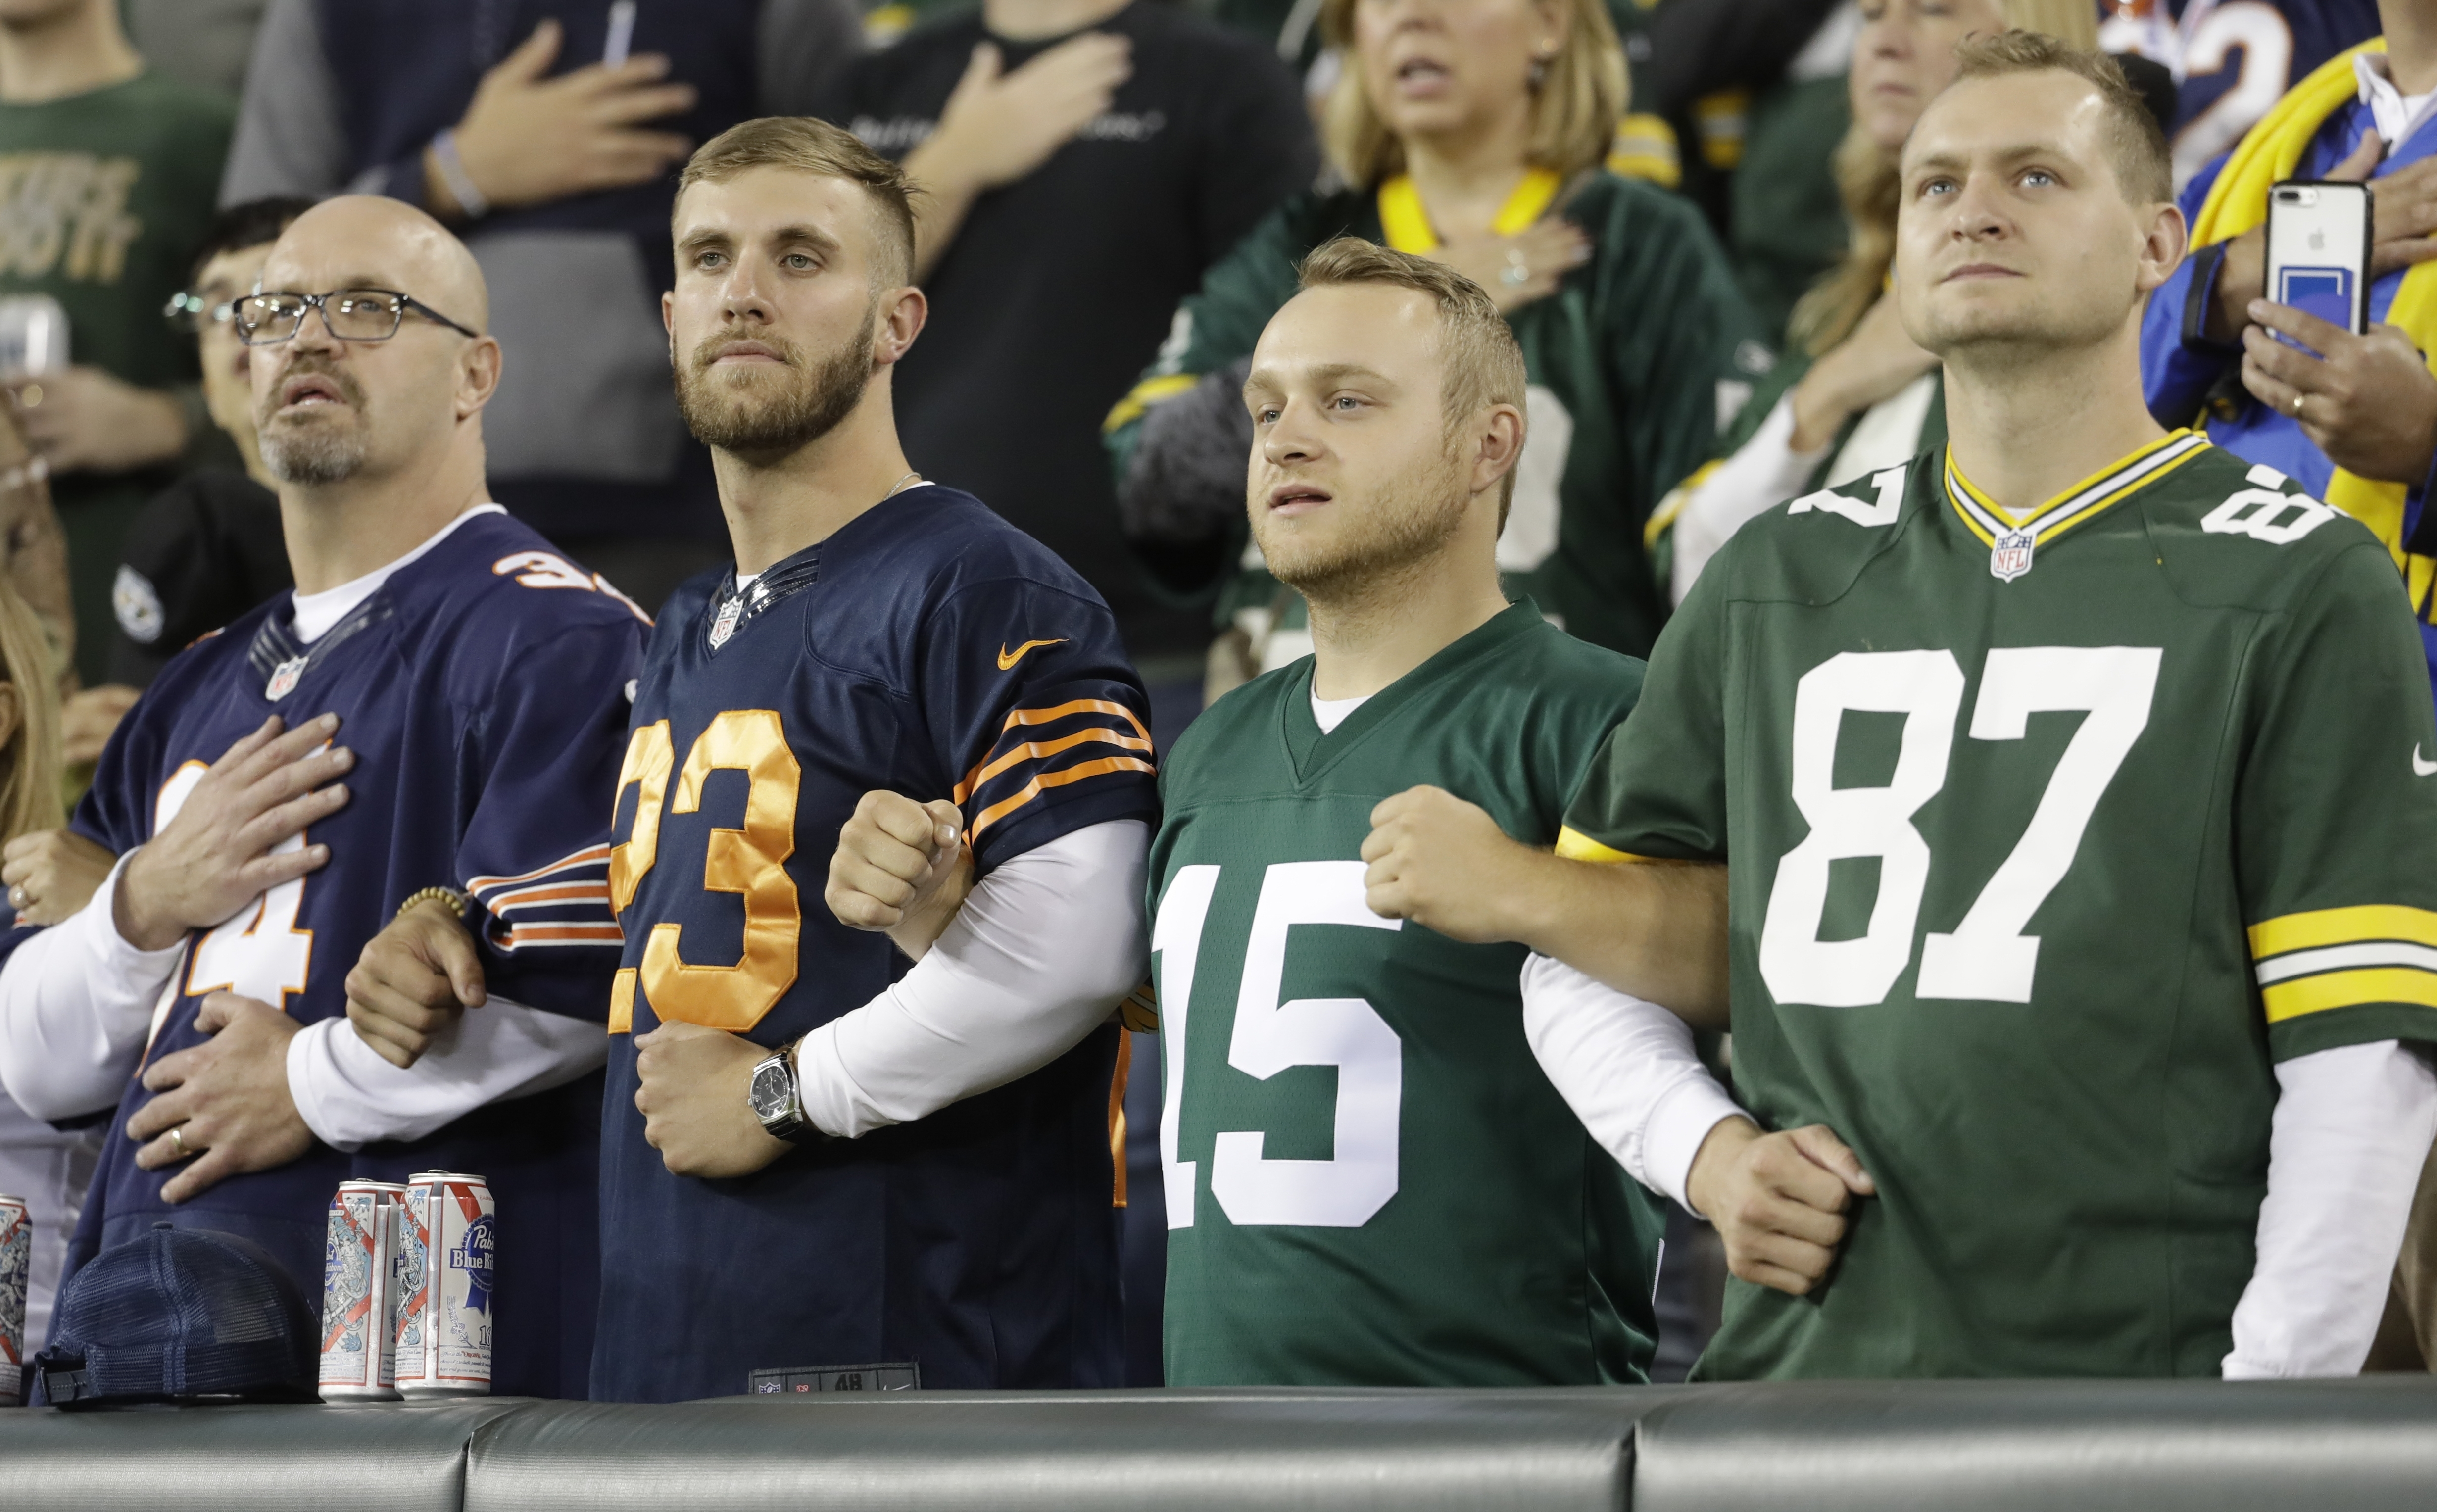 Fans lock arms during the national anthem before an NFL football game between the Green Bay Packers and the Chicago Bears Thursday, Sept. 28, 2017, in Green Bay, Wis. (AP Photo/Morry Gash)